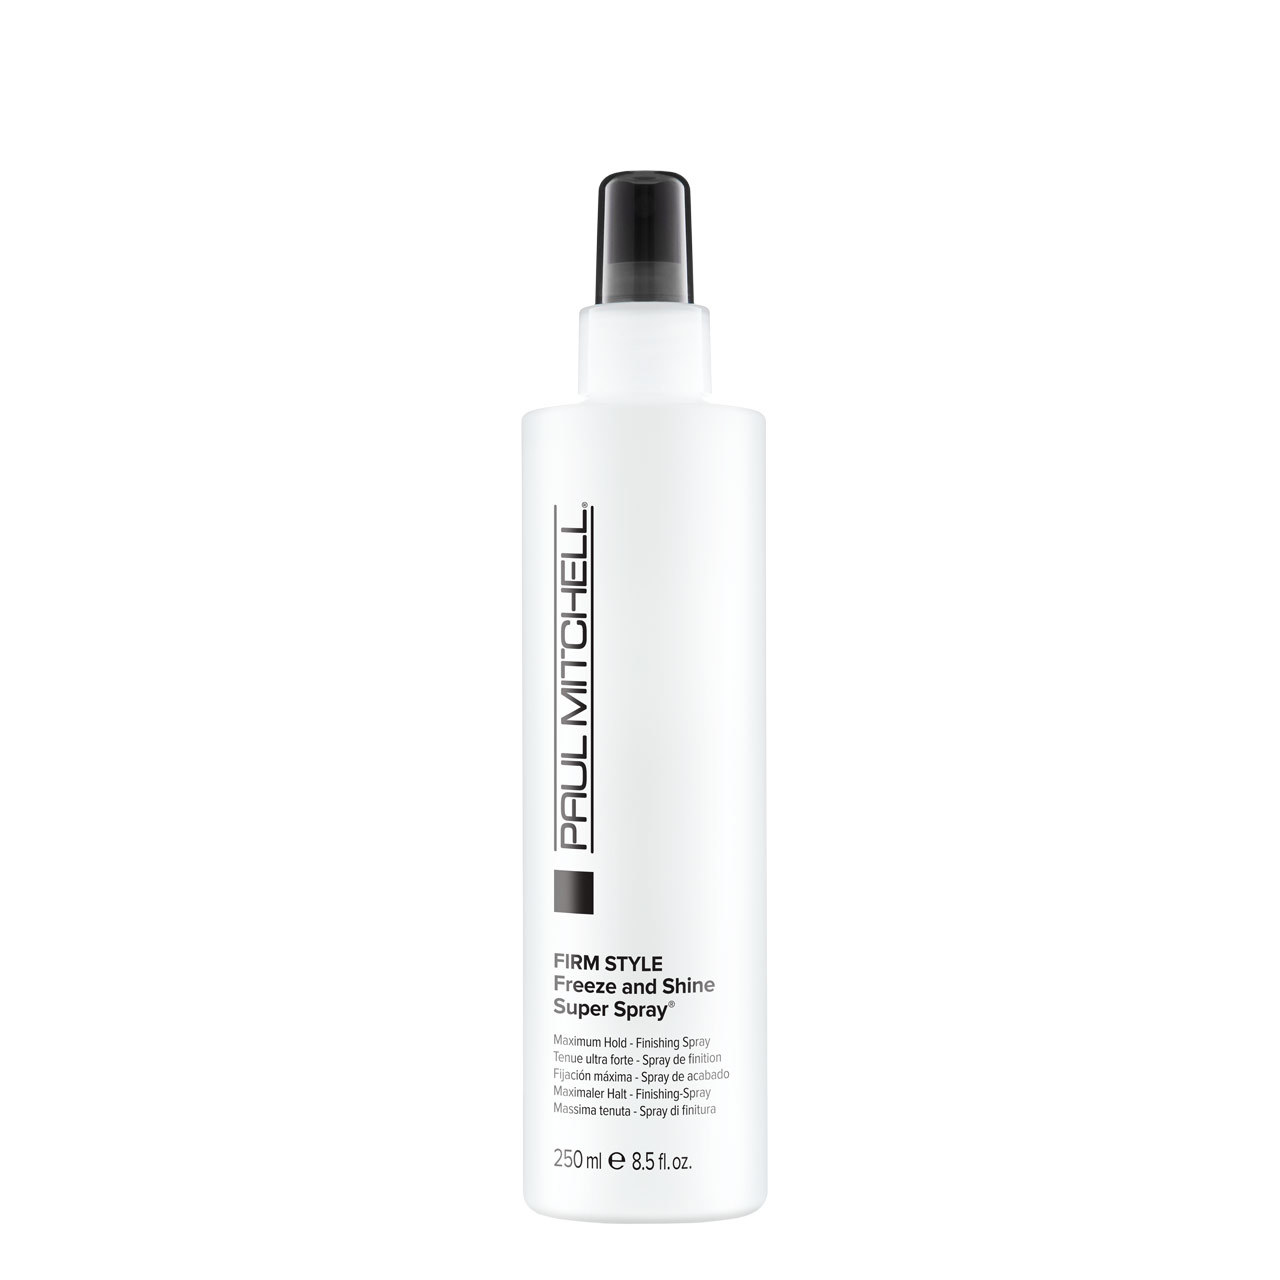 Freeze And Shine Super Spray obsah (ml): 250ml